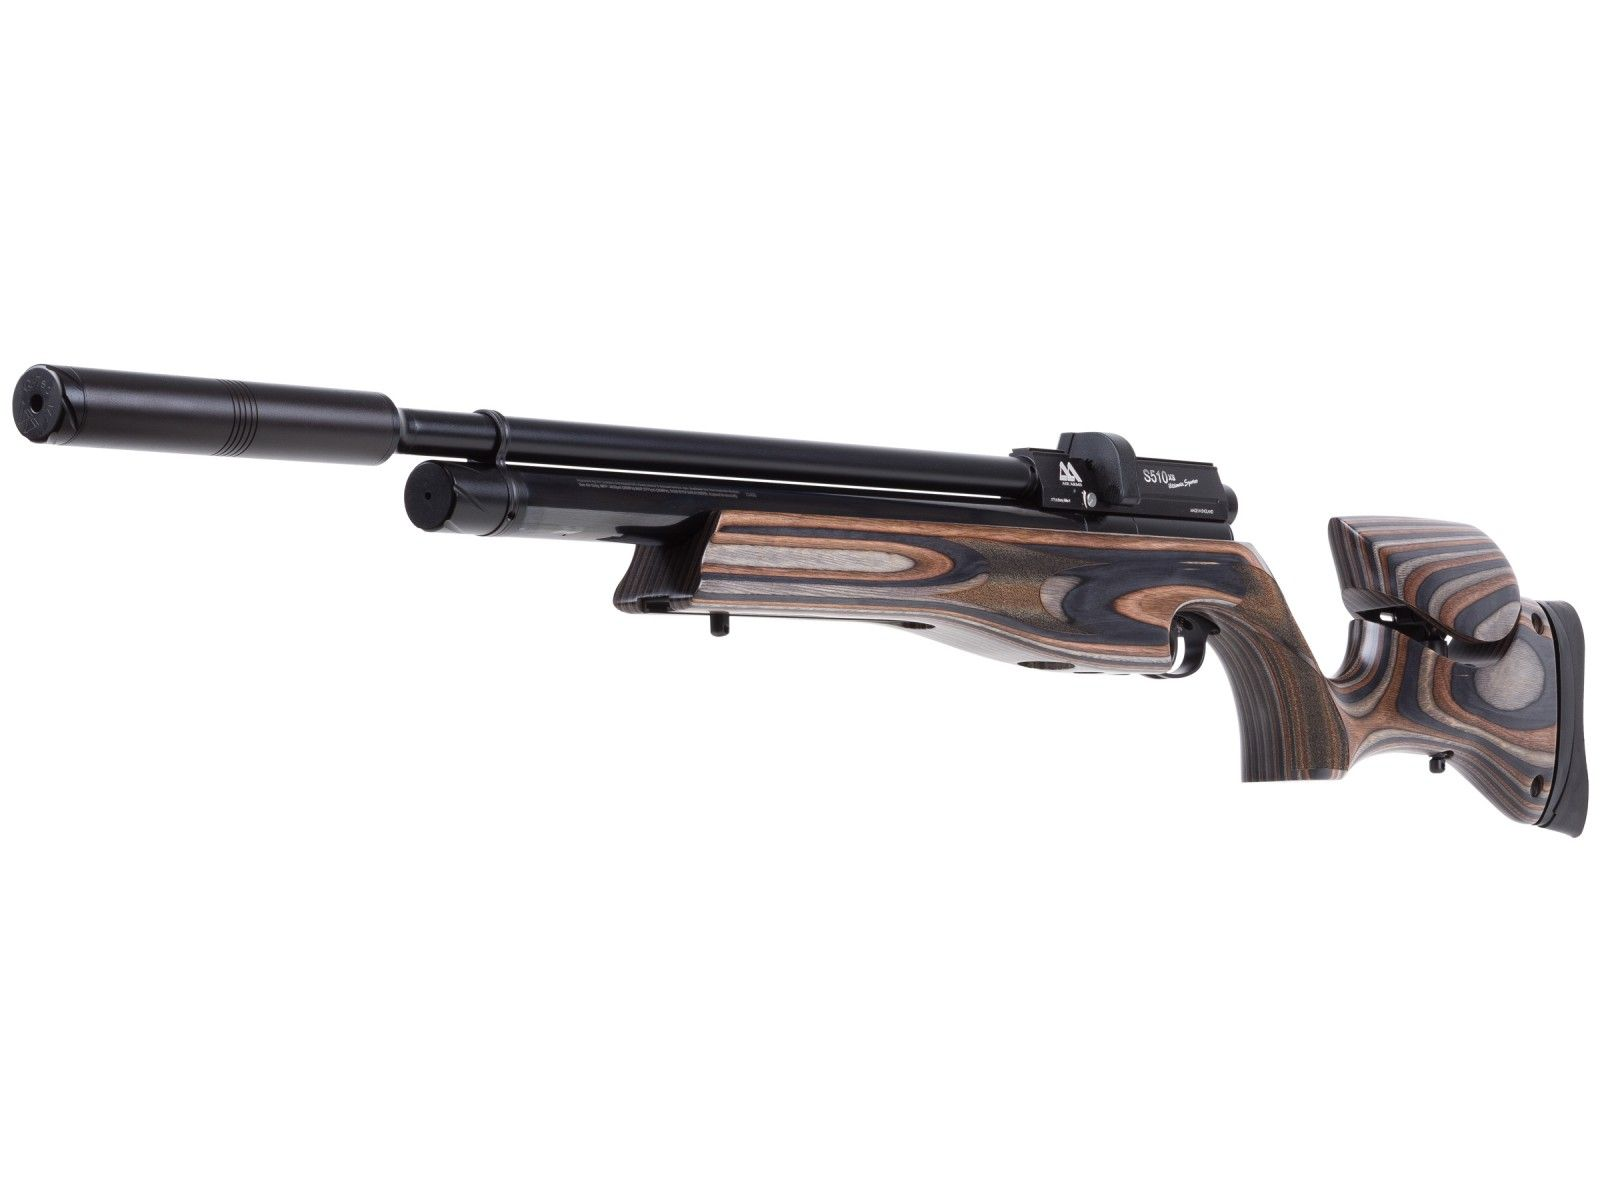 Pin On Air Guns And Accessories